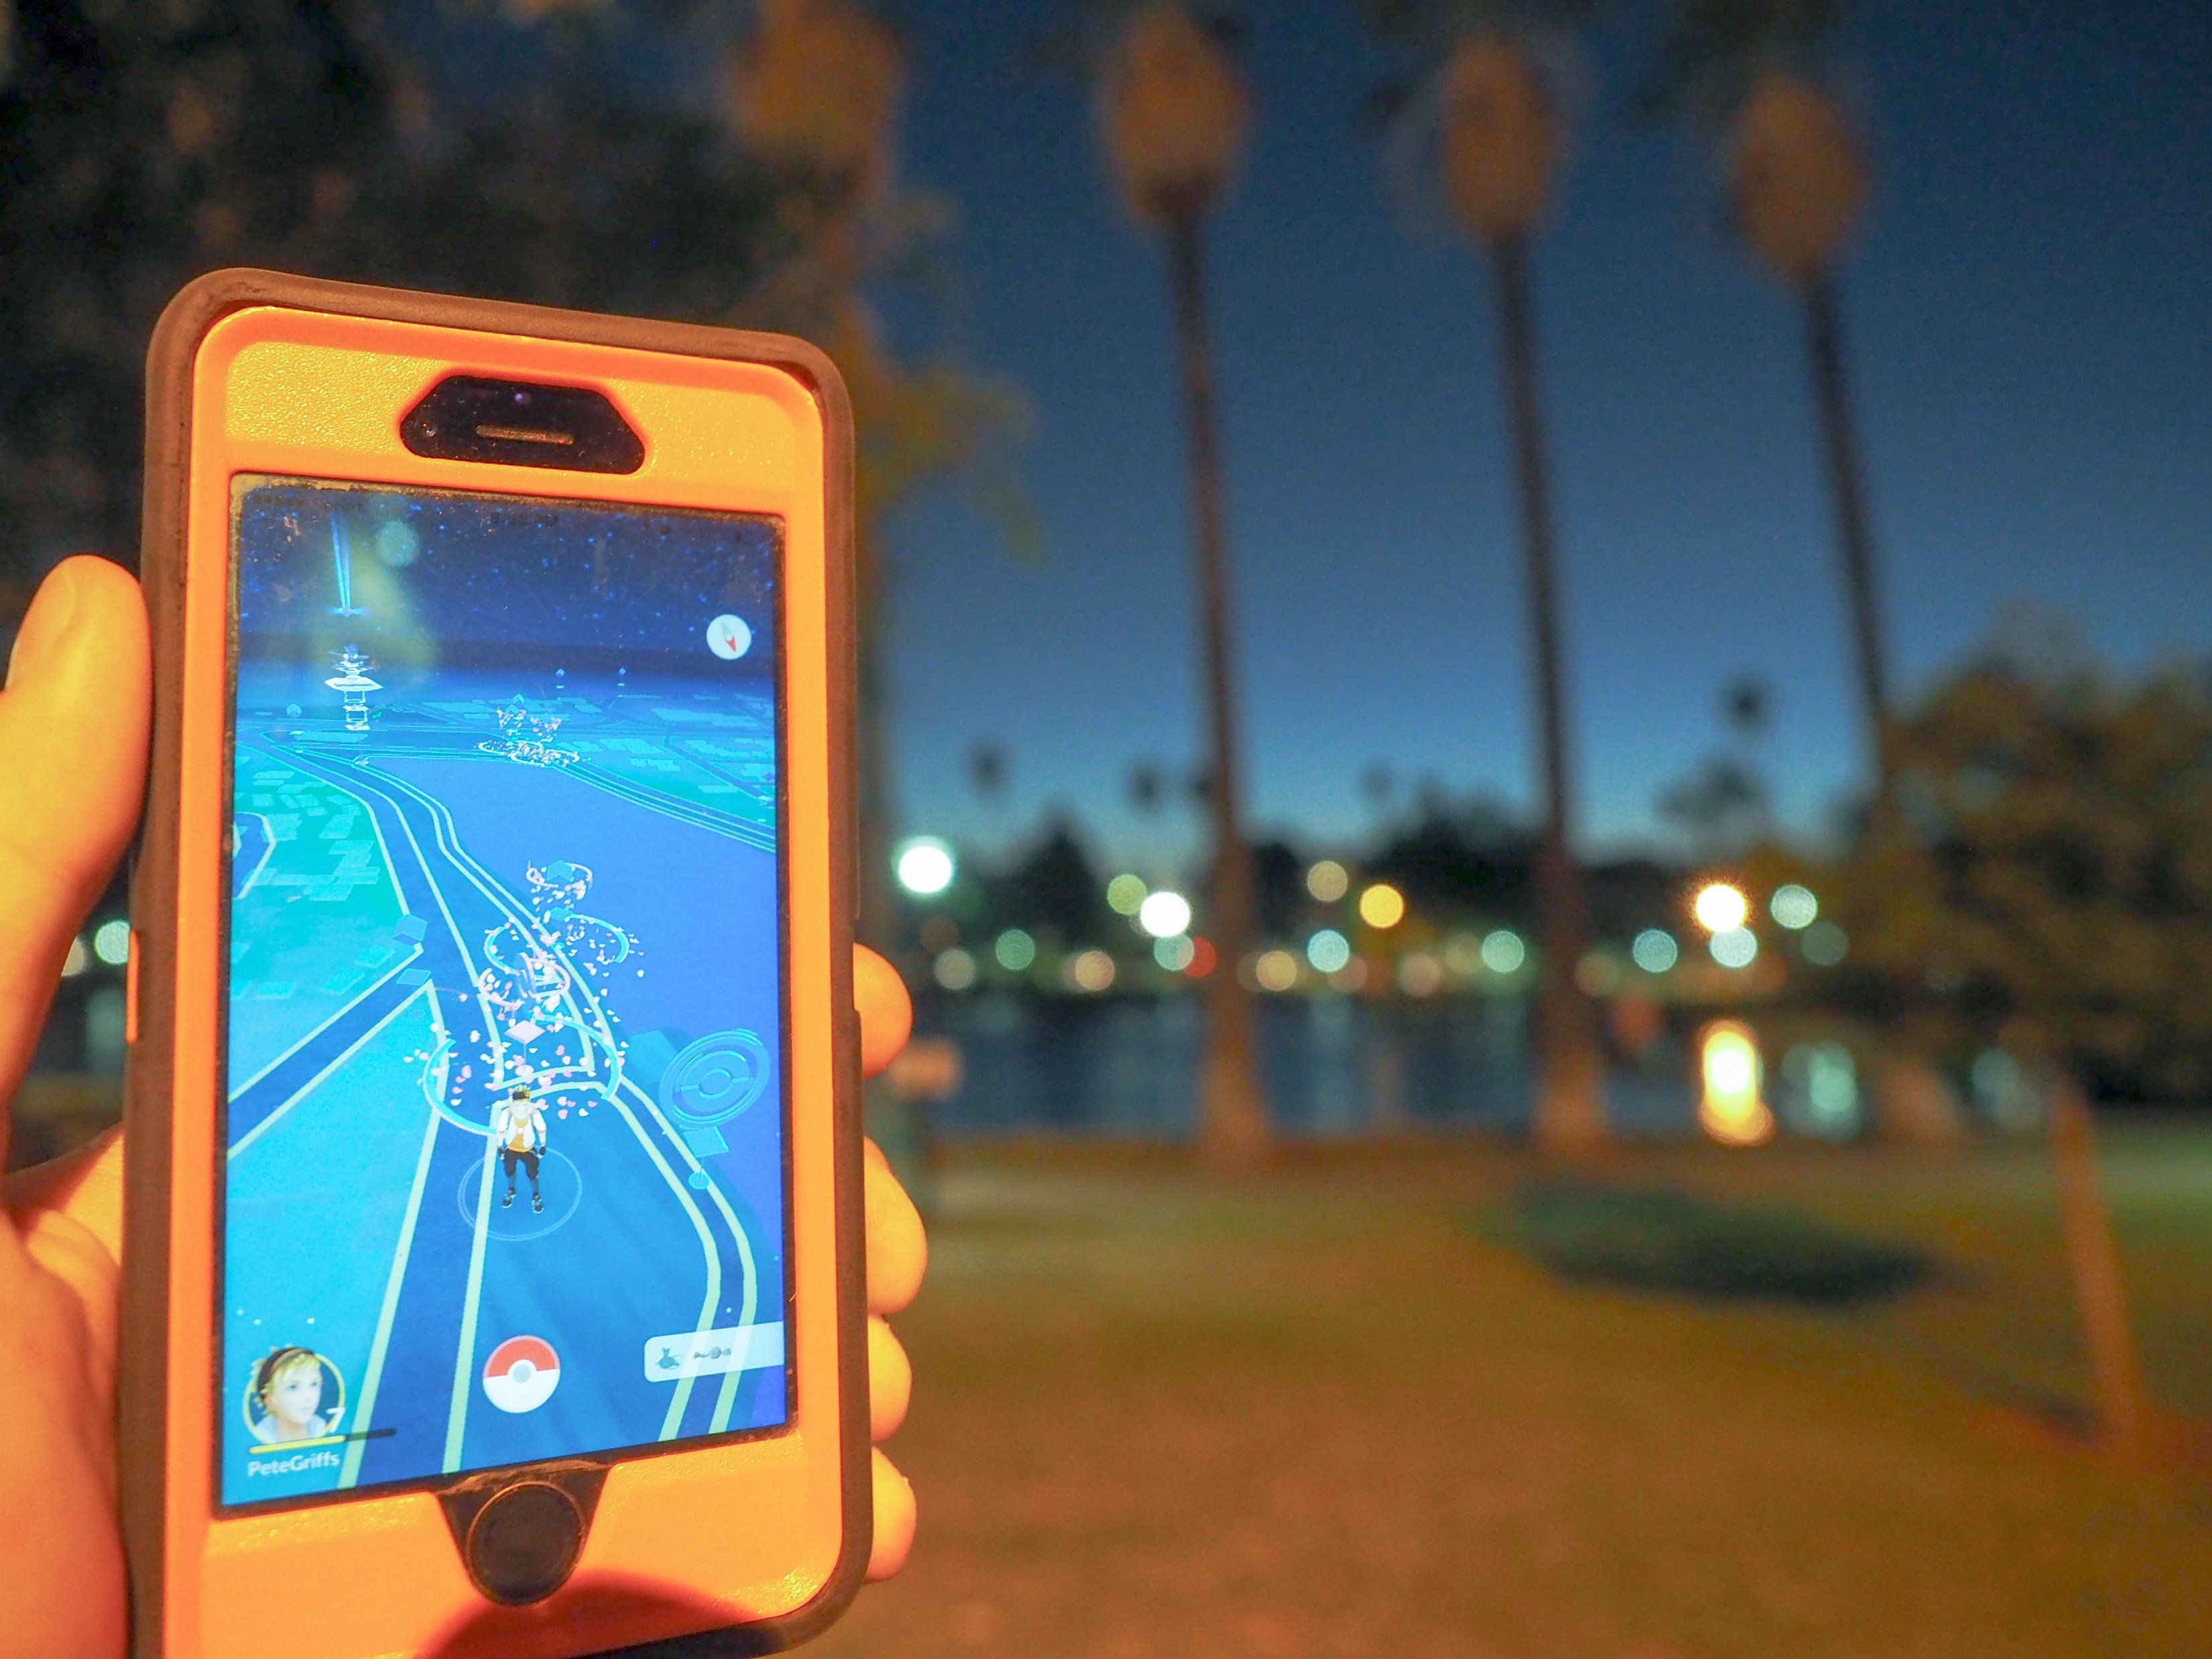 LOS ANGELES, CA - JULY 16: Pokemon Go players are seen in search of Pokemon and other in game items at Echo Park on July 16, 2016 in Los Angeles, California.  (Photo by PG/Bauer-Griffin/GC Images)